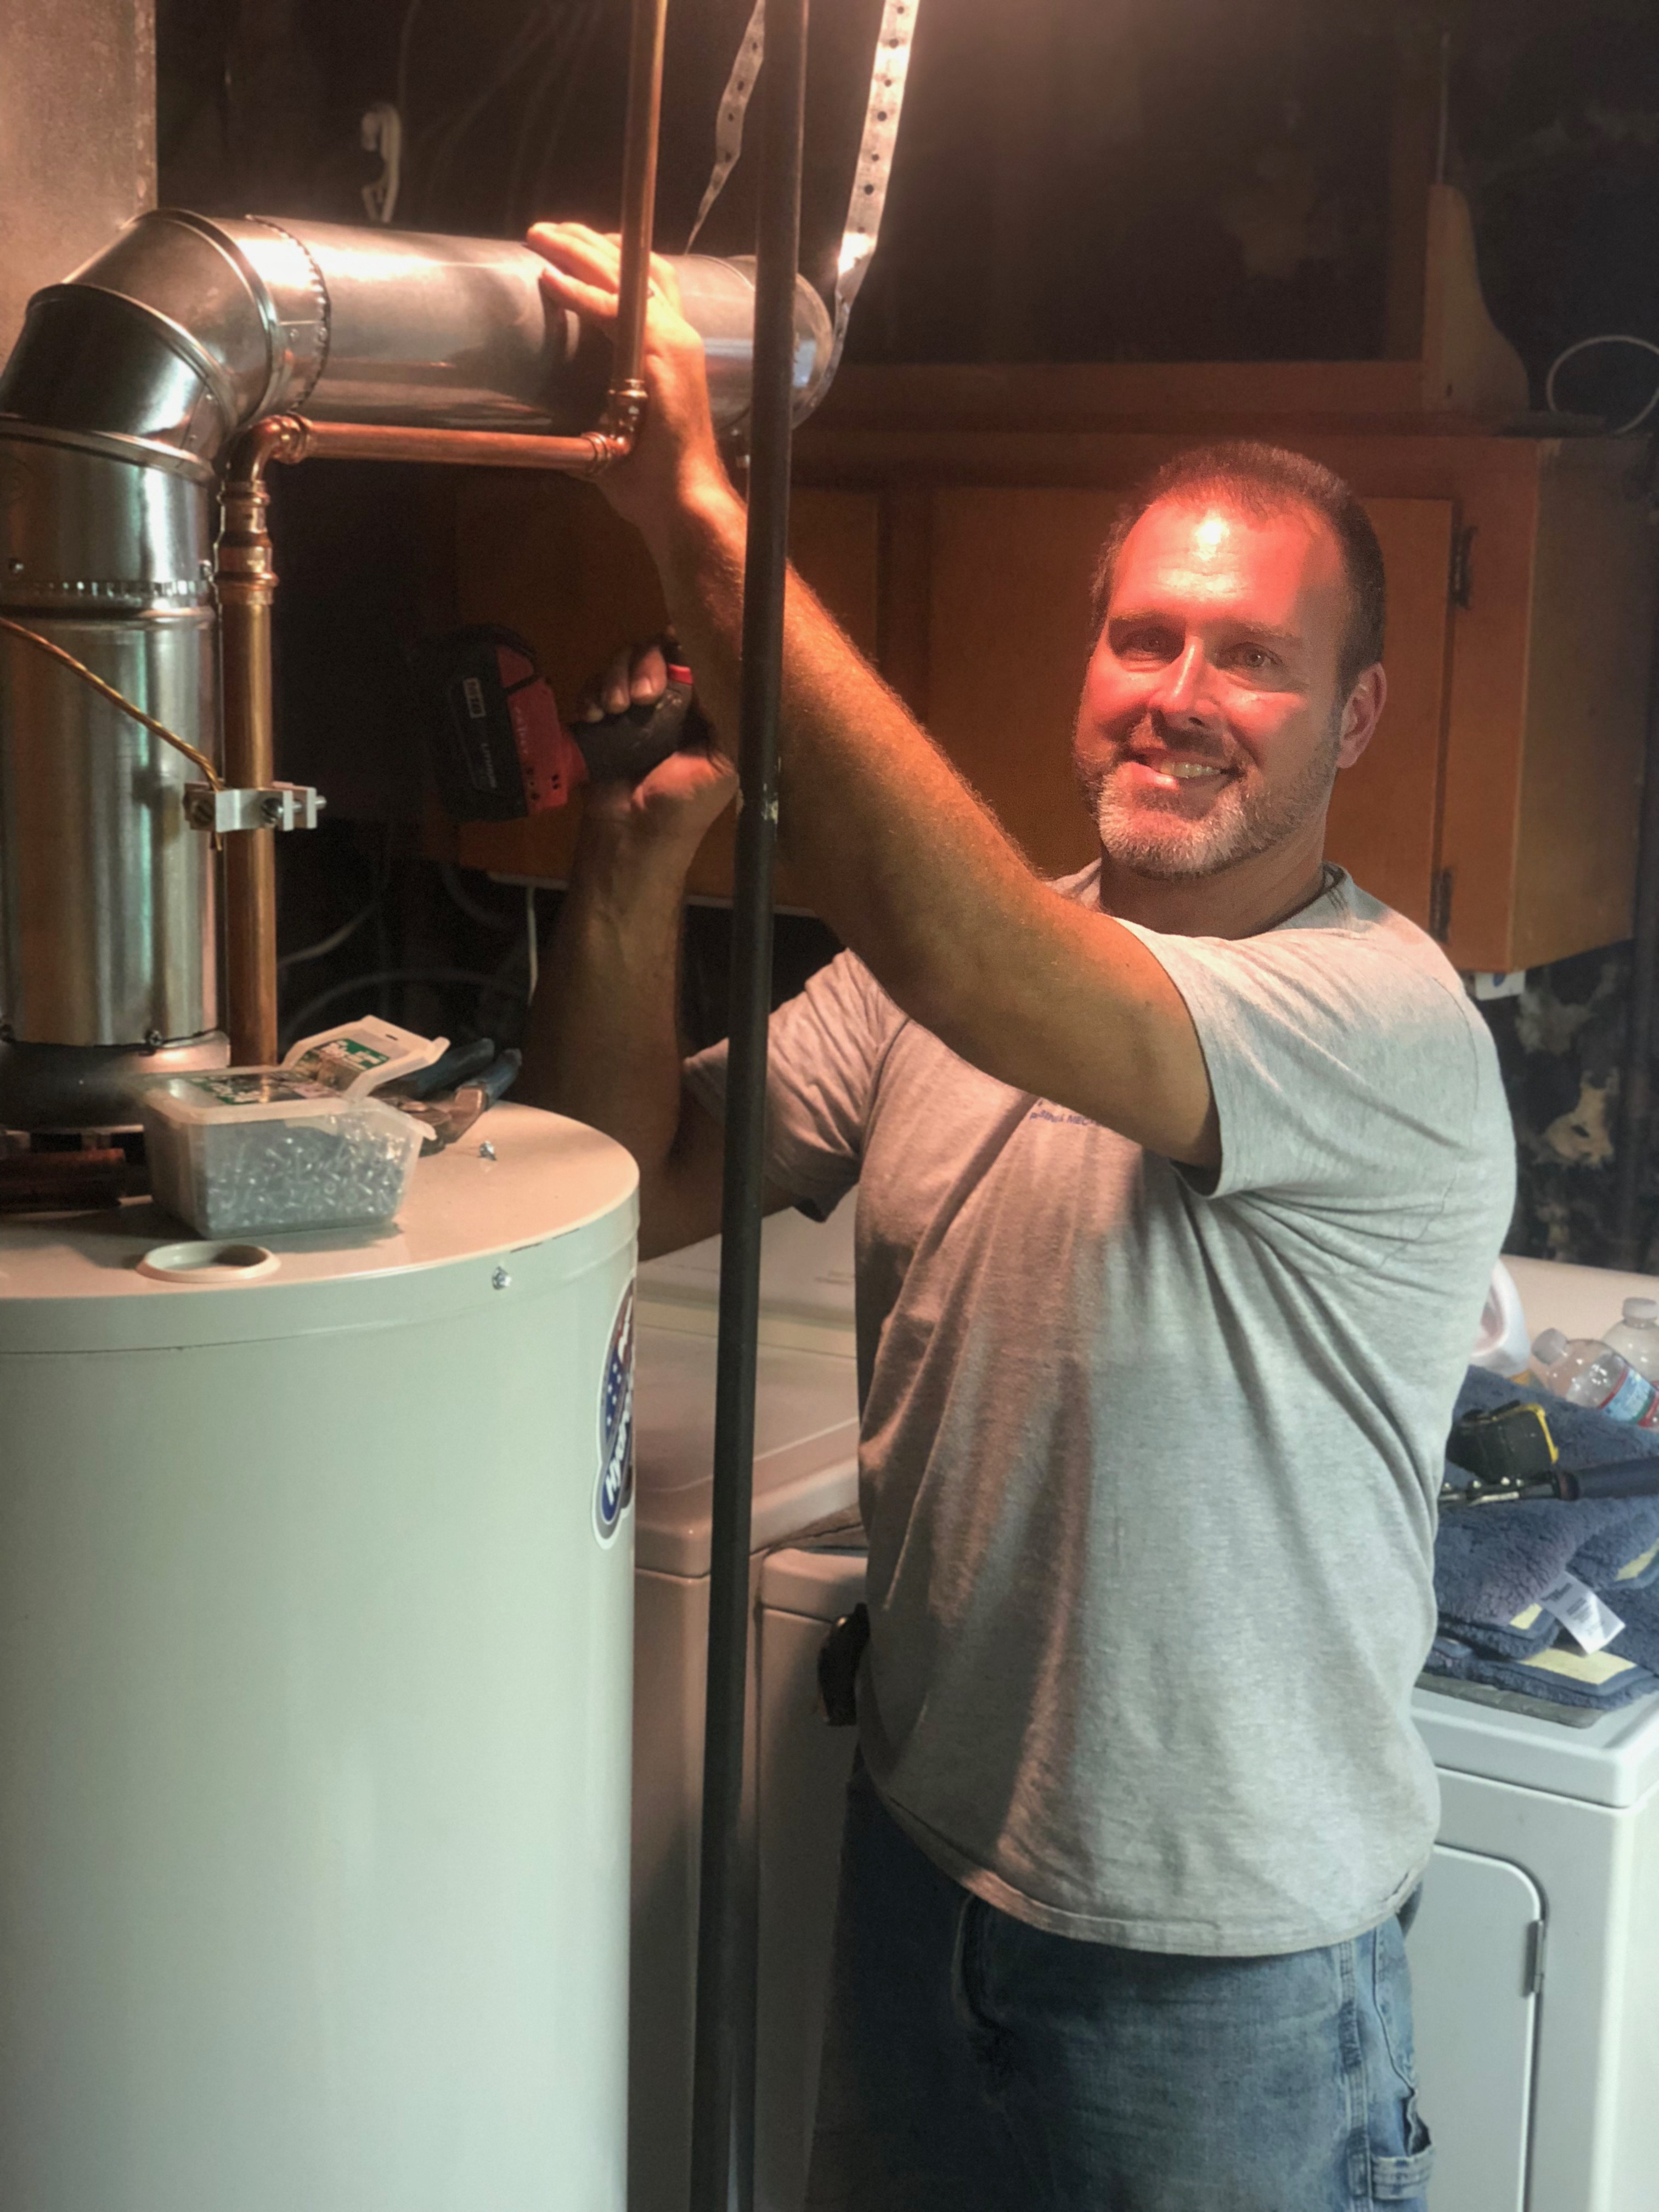 Tim installing flue pipe on water heater